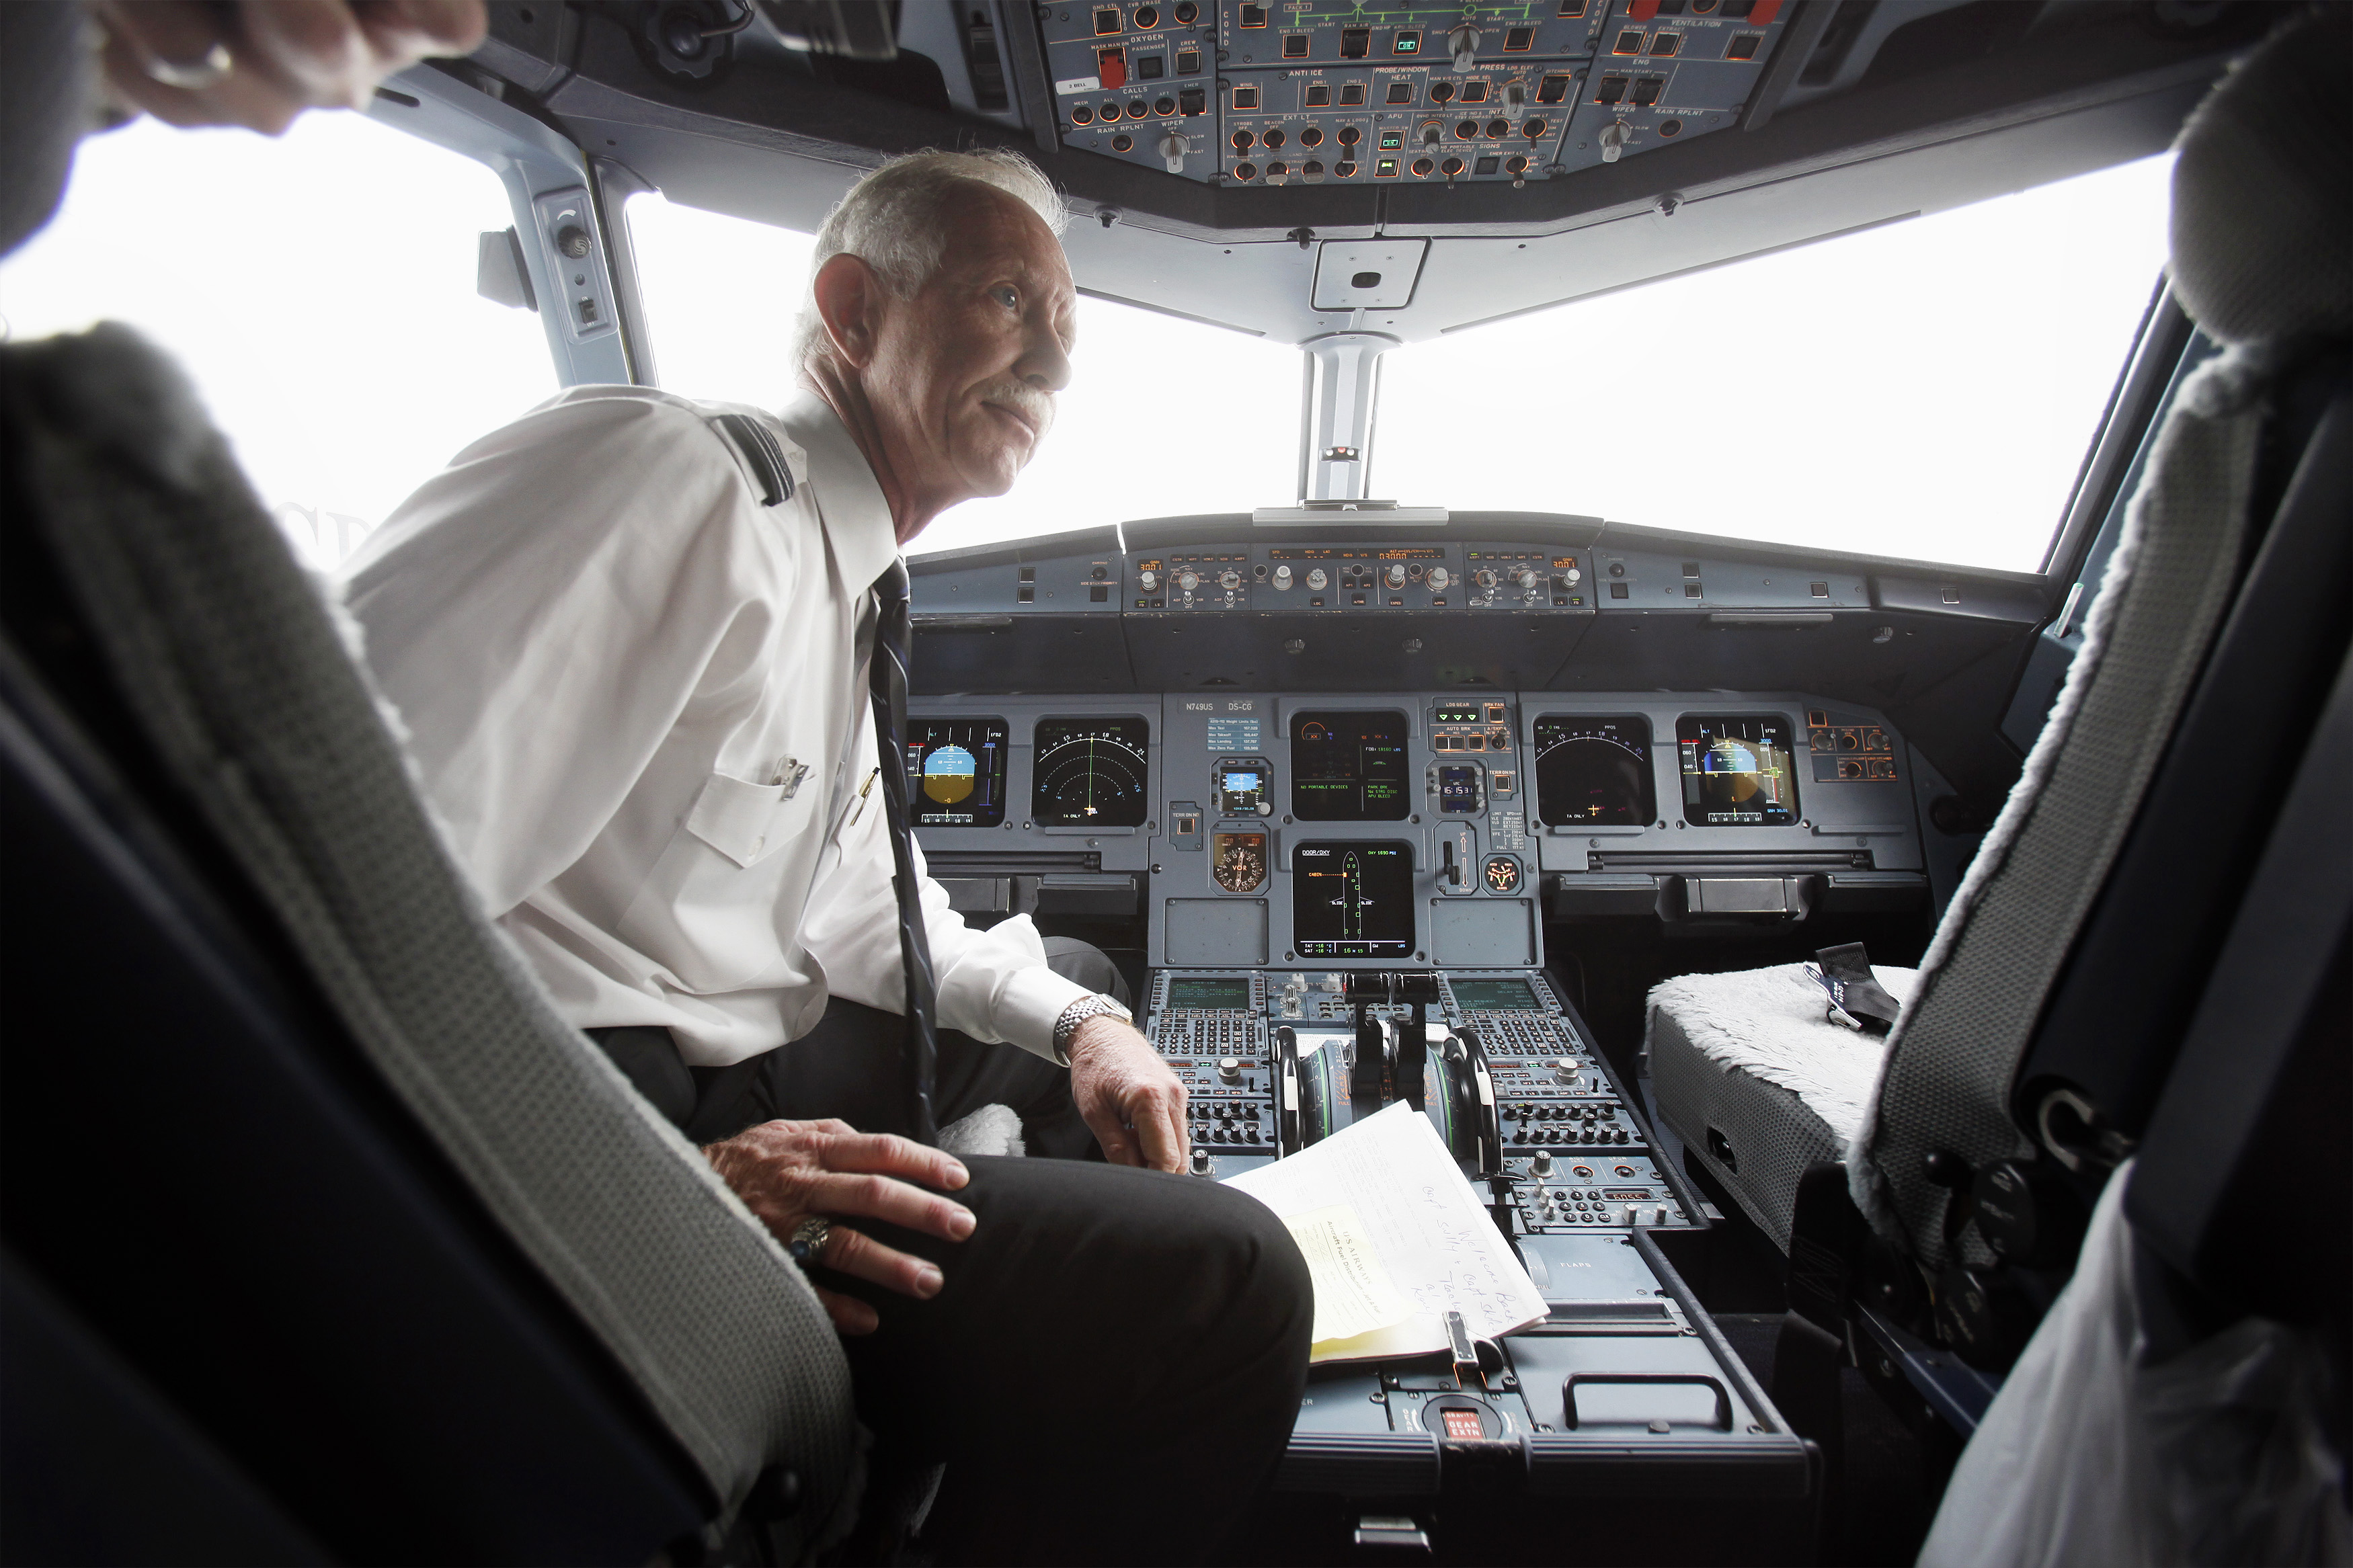 Lean six sigma world conference home lean six sigma world conference is proud to announce captain sully sullenberger as the keynote speaker xflitez Gallery